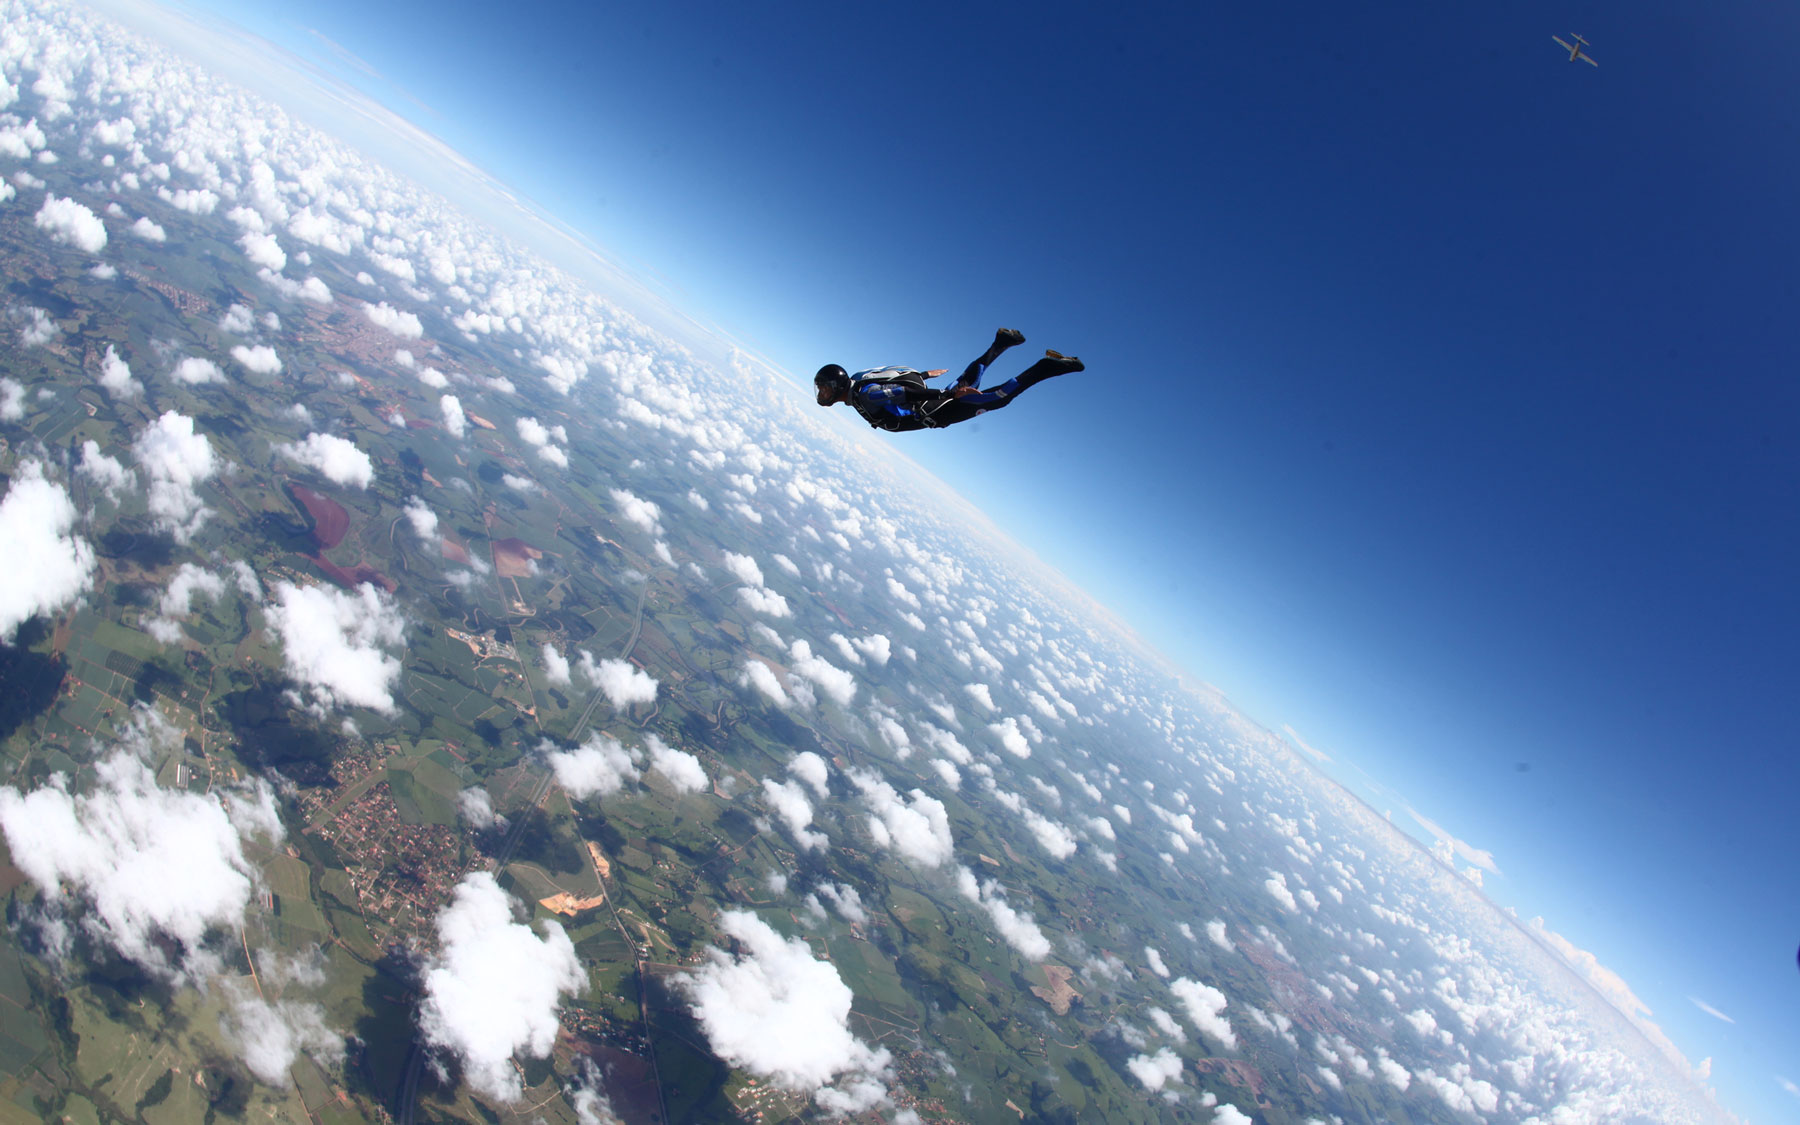 Skydiver jumps out of plane at 25,000 with no parachute